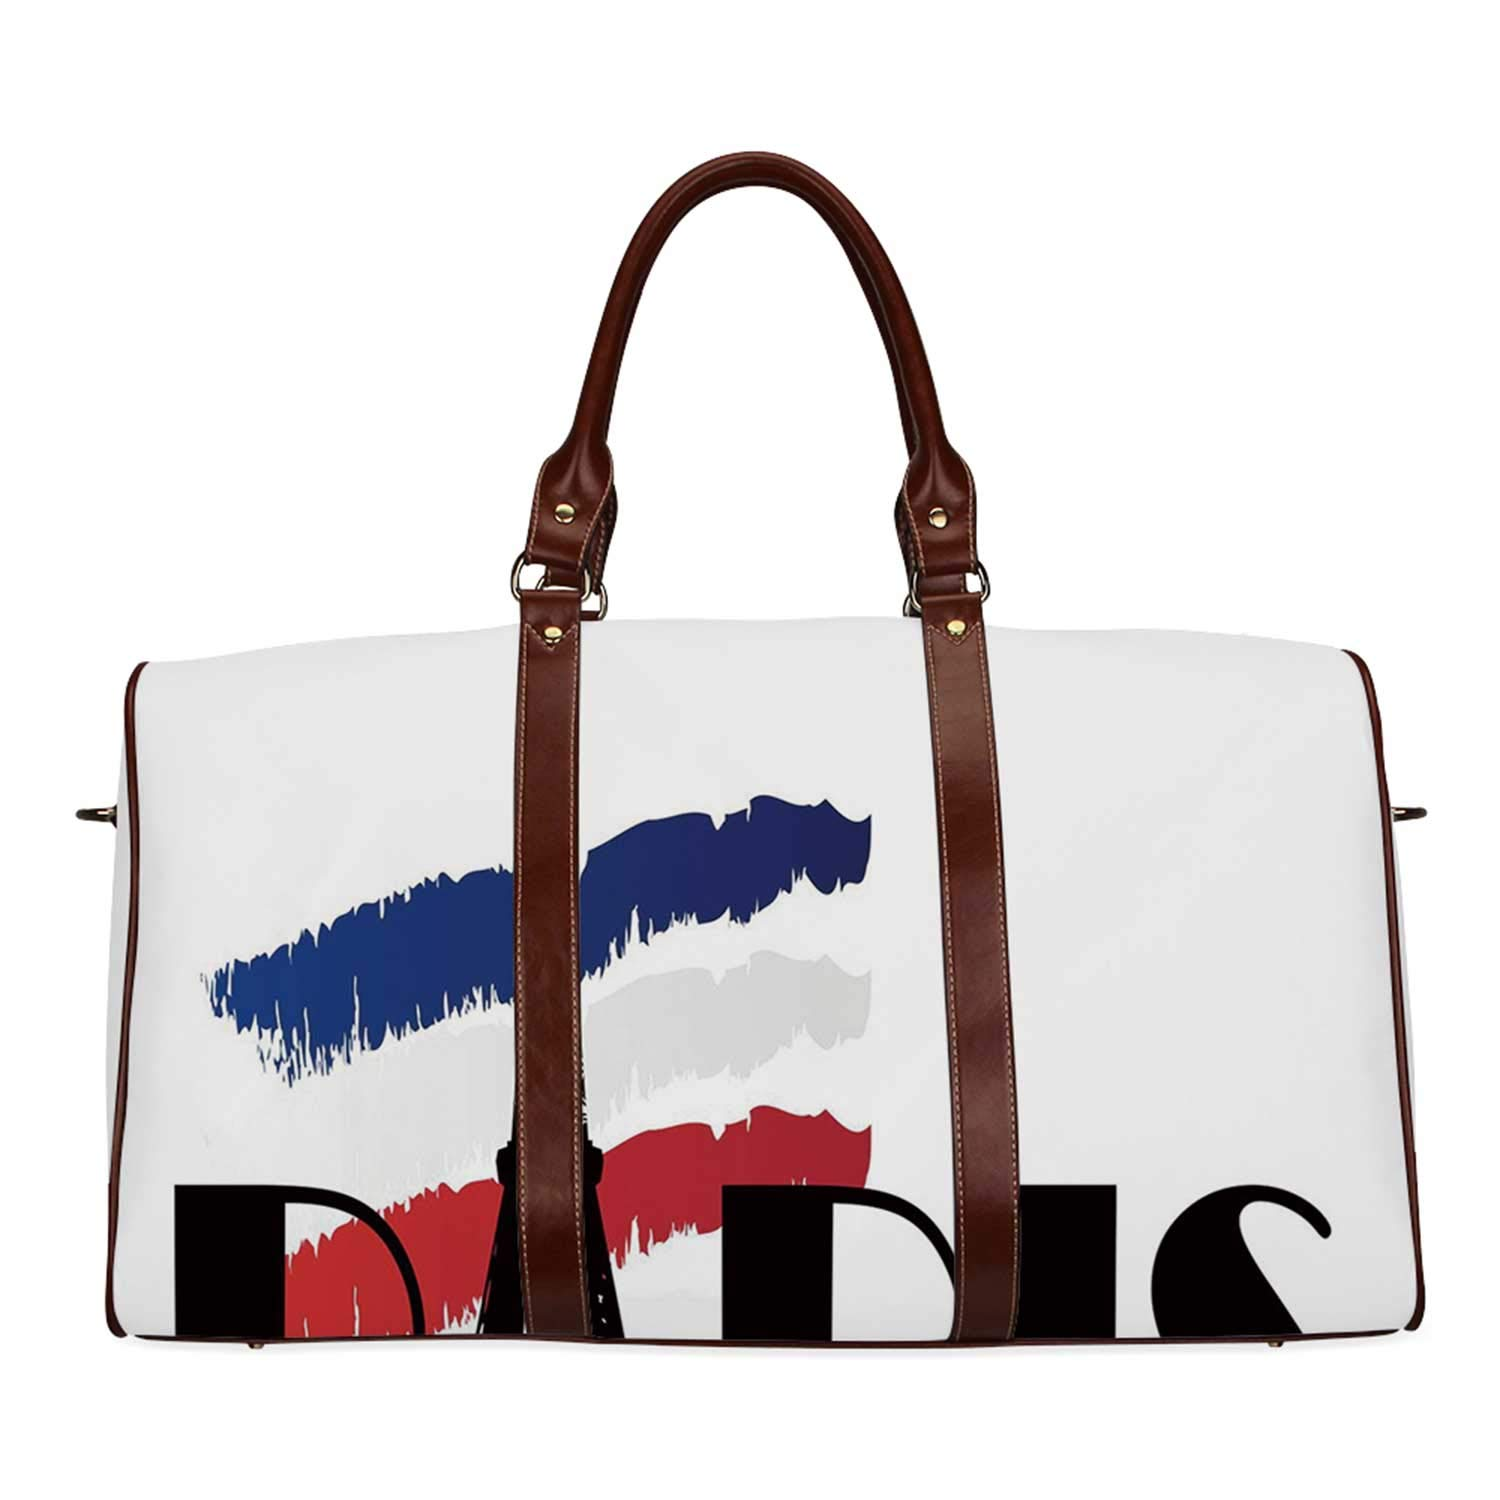 Doodle Practicality Travel Bag,Paris Typography with Eiffel Tower Figure and France Flag Tone Europe Image Decorative for School,20.8''L x 12''W x 9.8''H by YOLIYANA